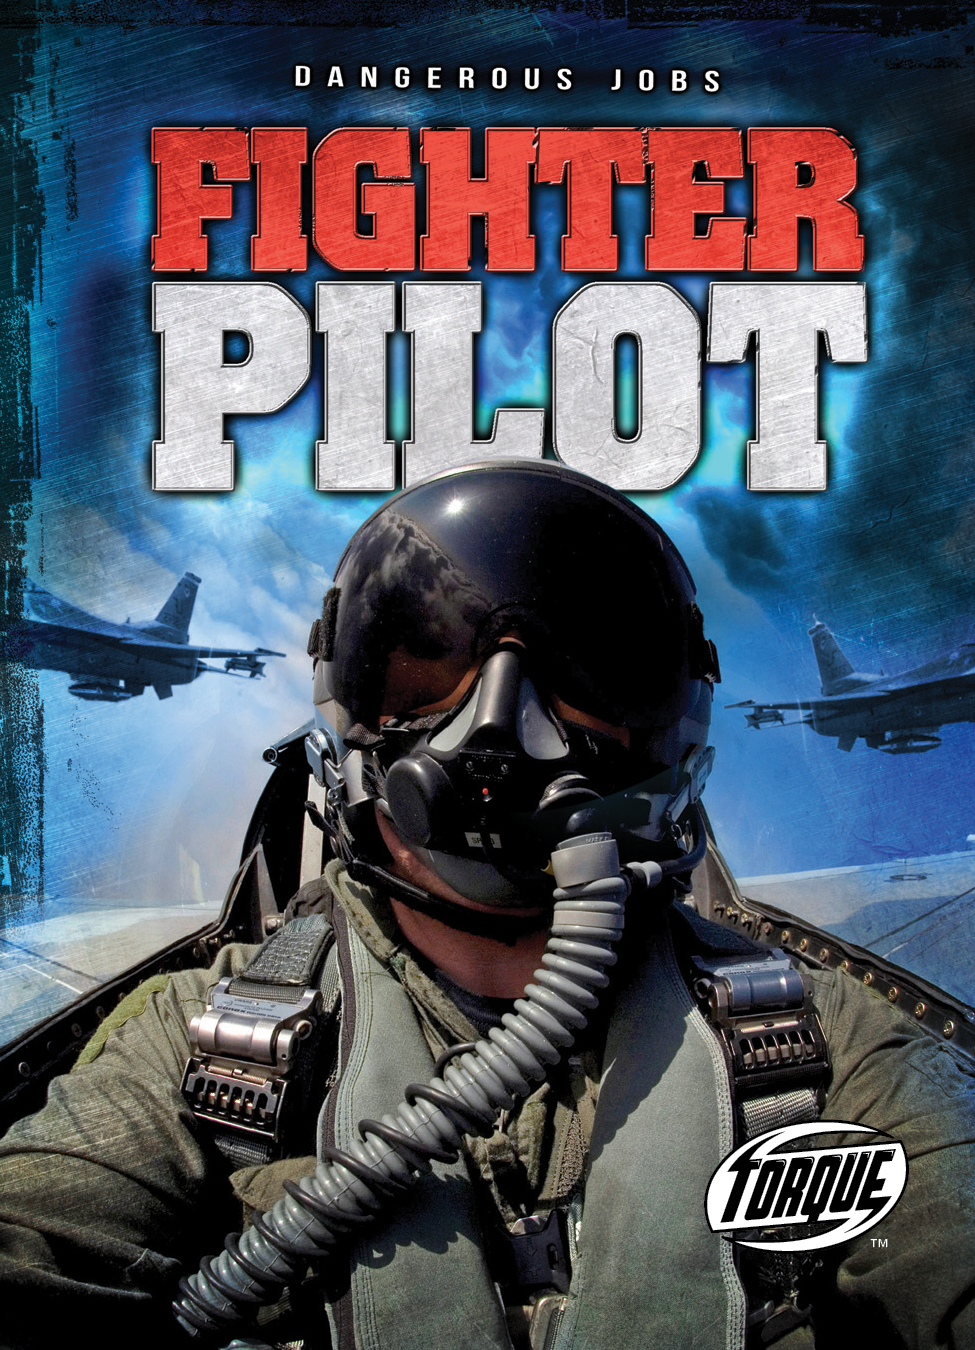 Fighter Pilot By Nick Gordon